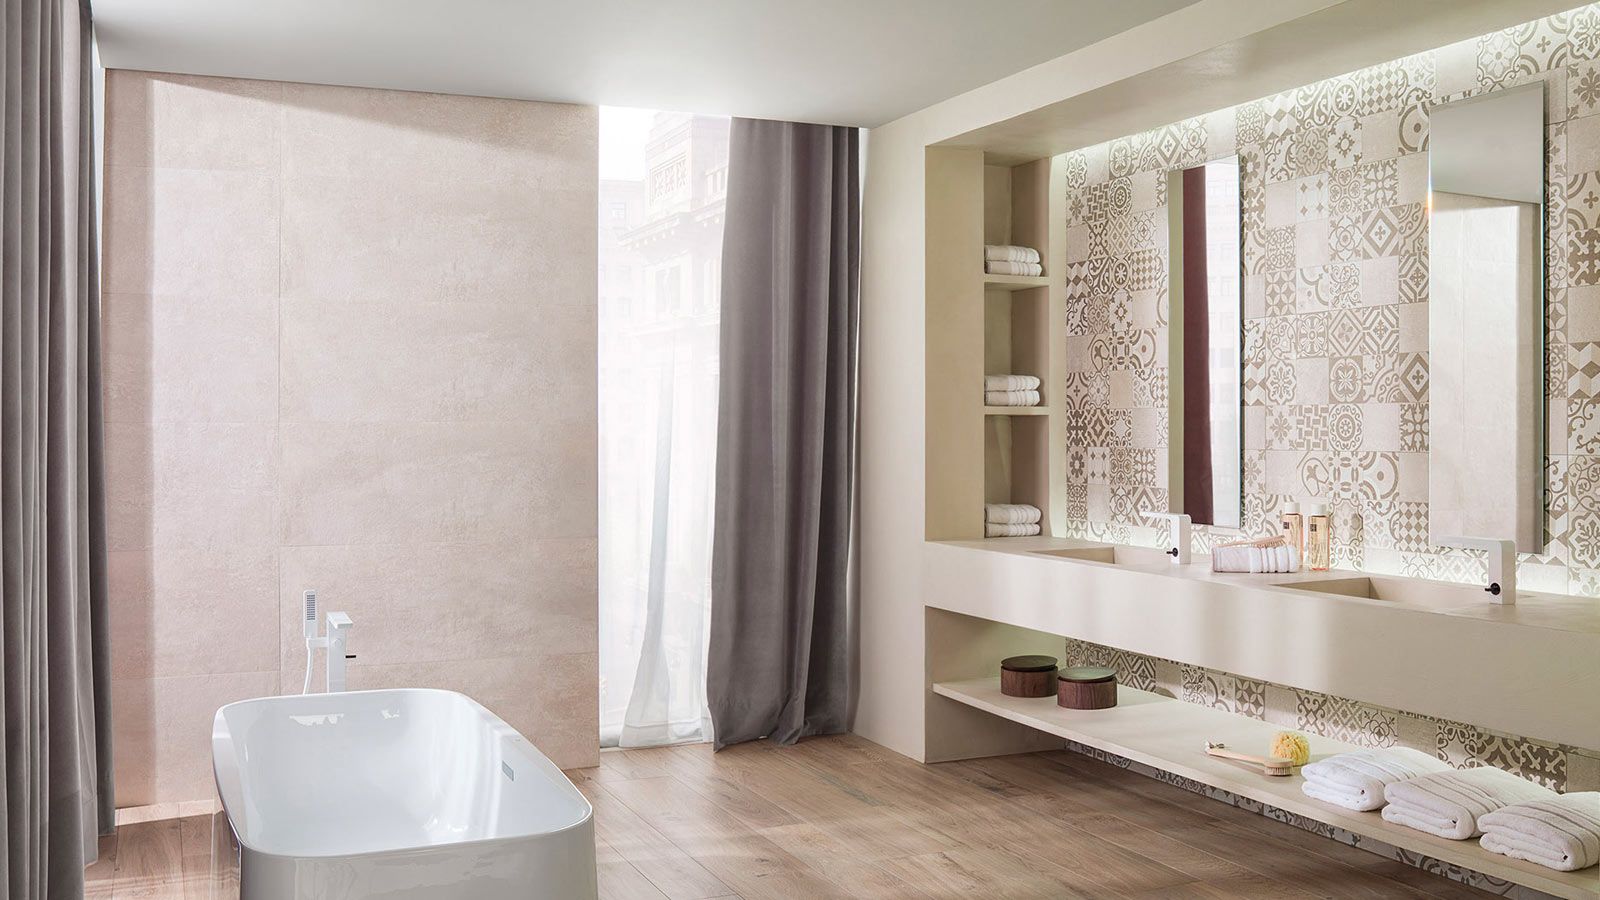 PORCELANOSA Group's ceramic tile collections usher in the spring with new prints and floral motifs